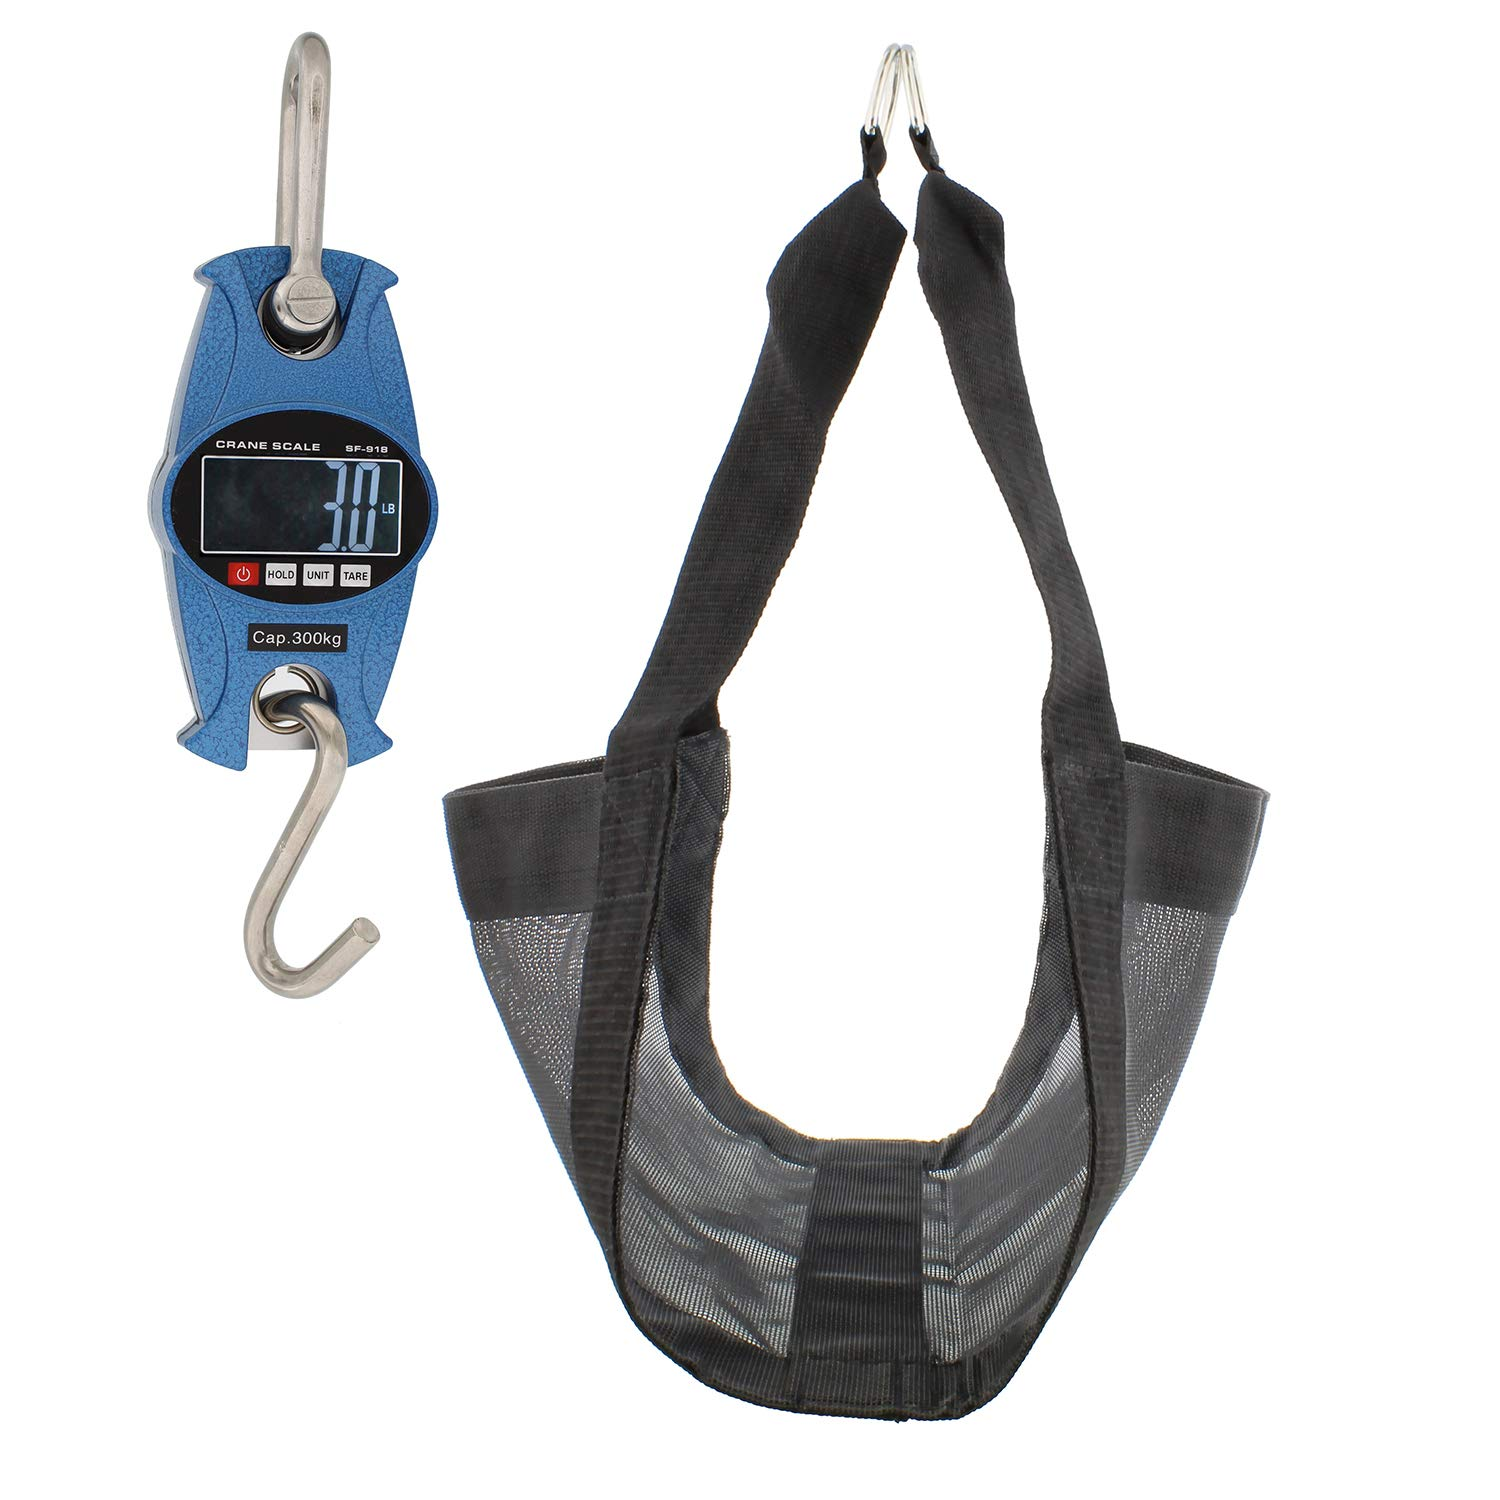 Rural365 Digital Hanging Scale Blue Calf Scale /& Calf Sling for Weighing 660 lb Mini Crane Scale /& Livestock Sling